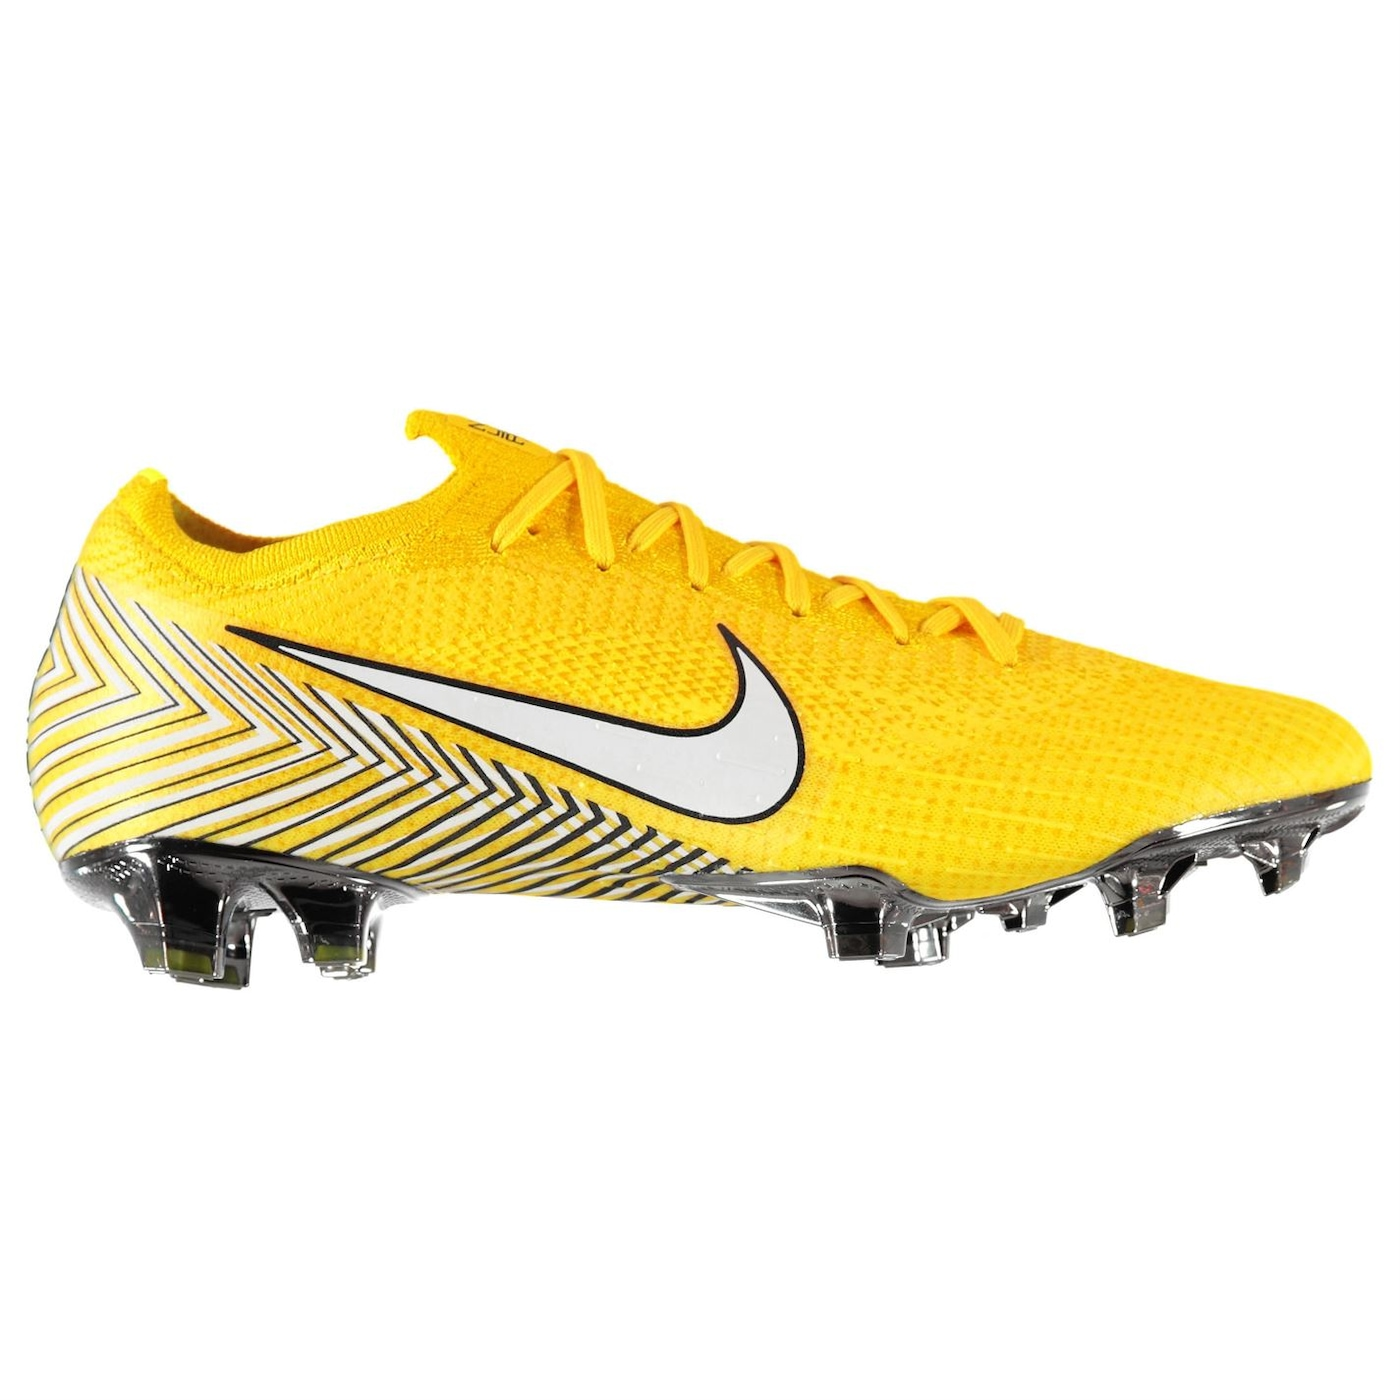 Nike Mercurial Vapor Elite Neymar Jr Mens AG Football Boots